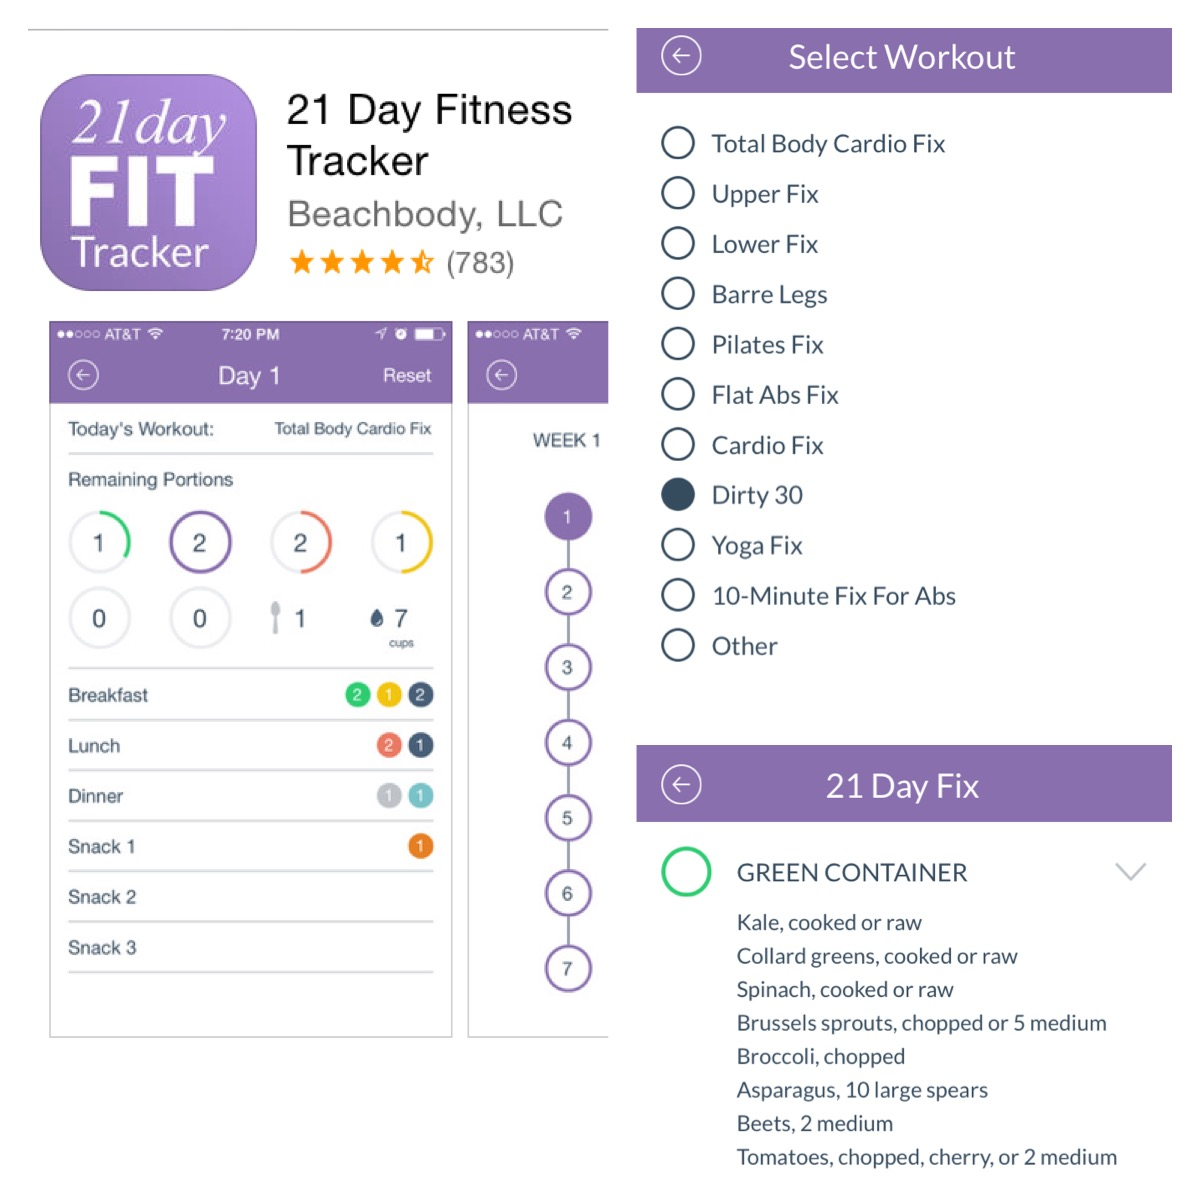 How To Get Ready For The 21 Day Fix